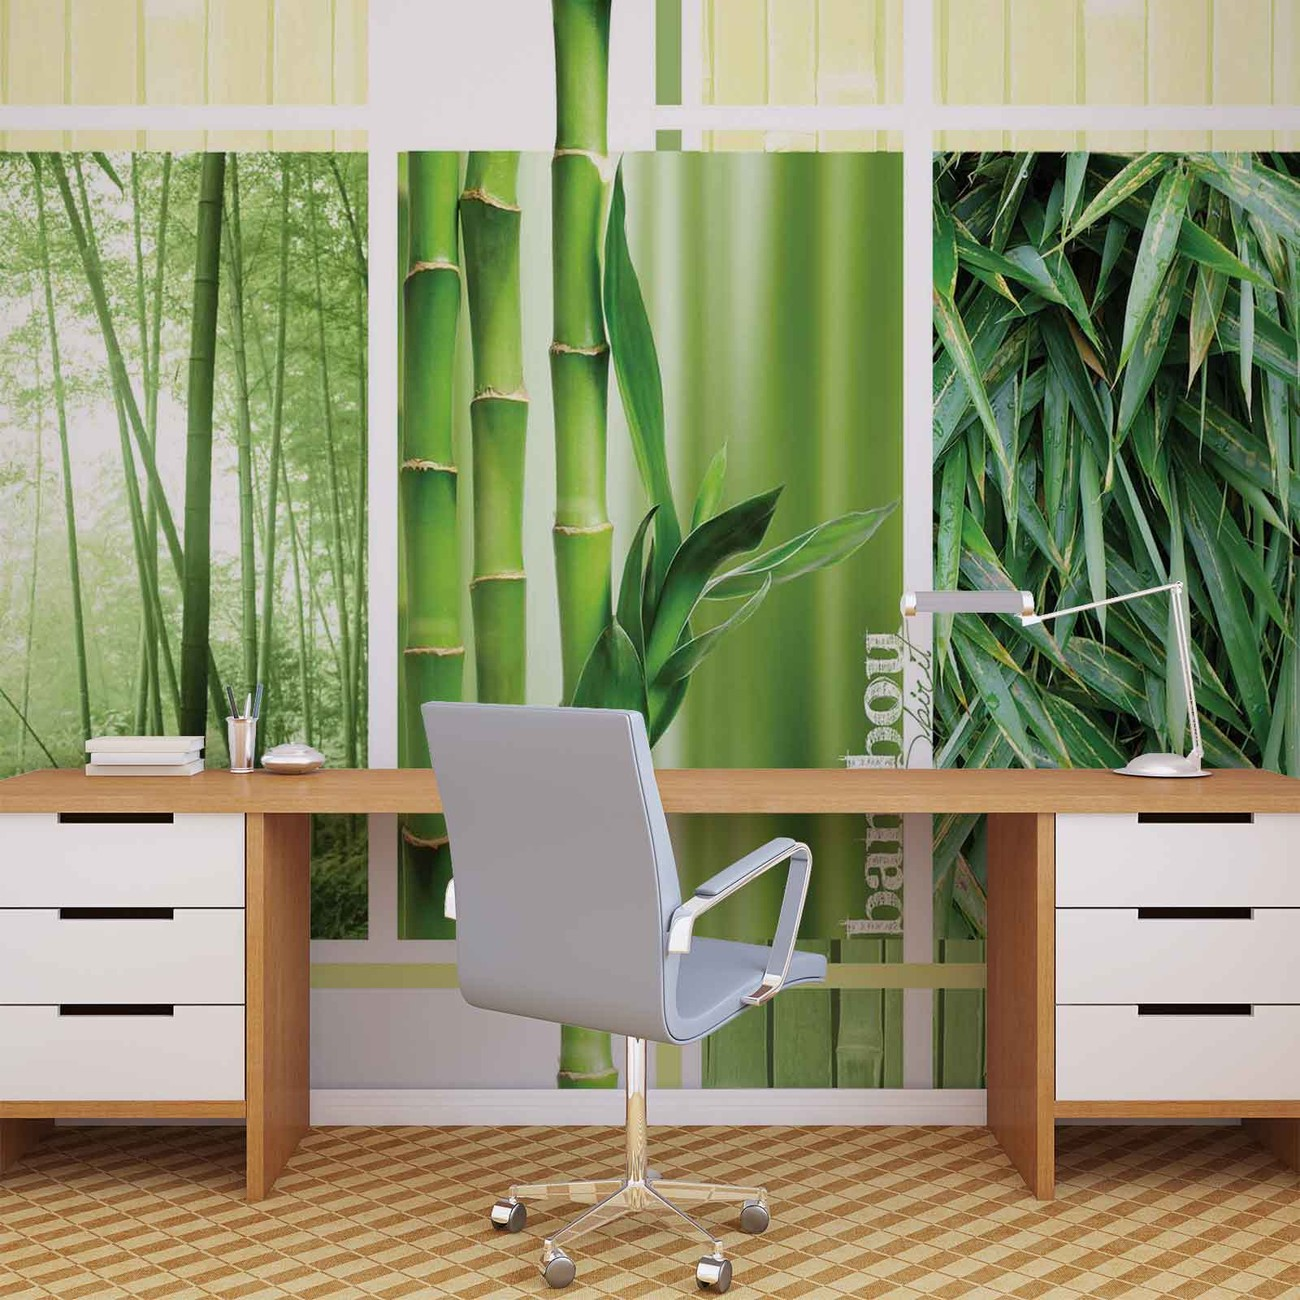 Bamboo forest nature wall paper mural buy at europosters for Bamboo forest wall mural